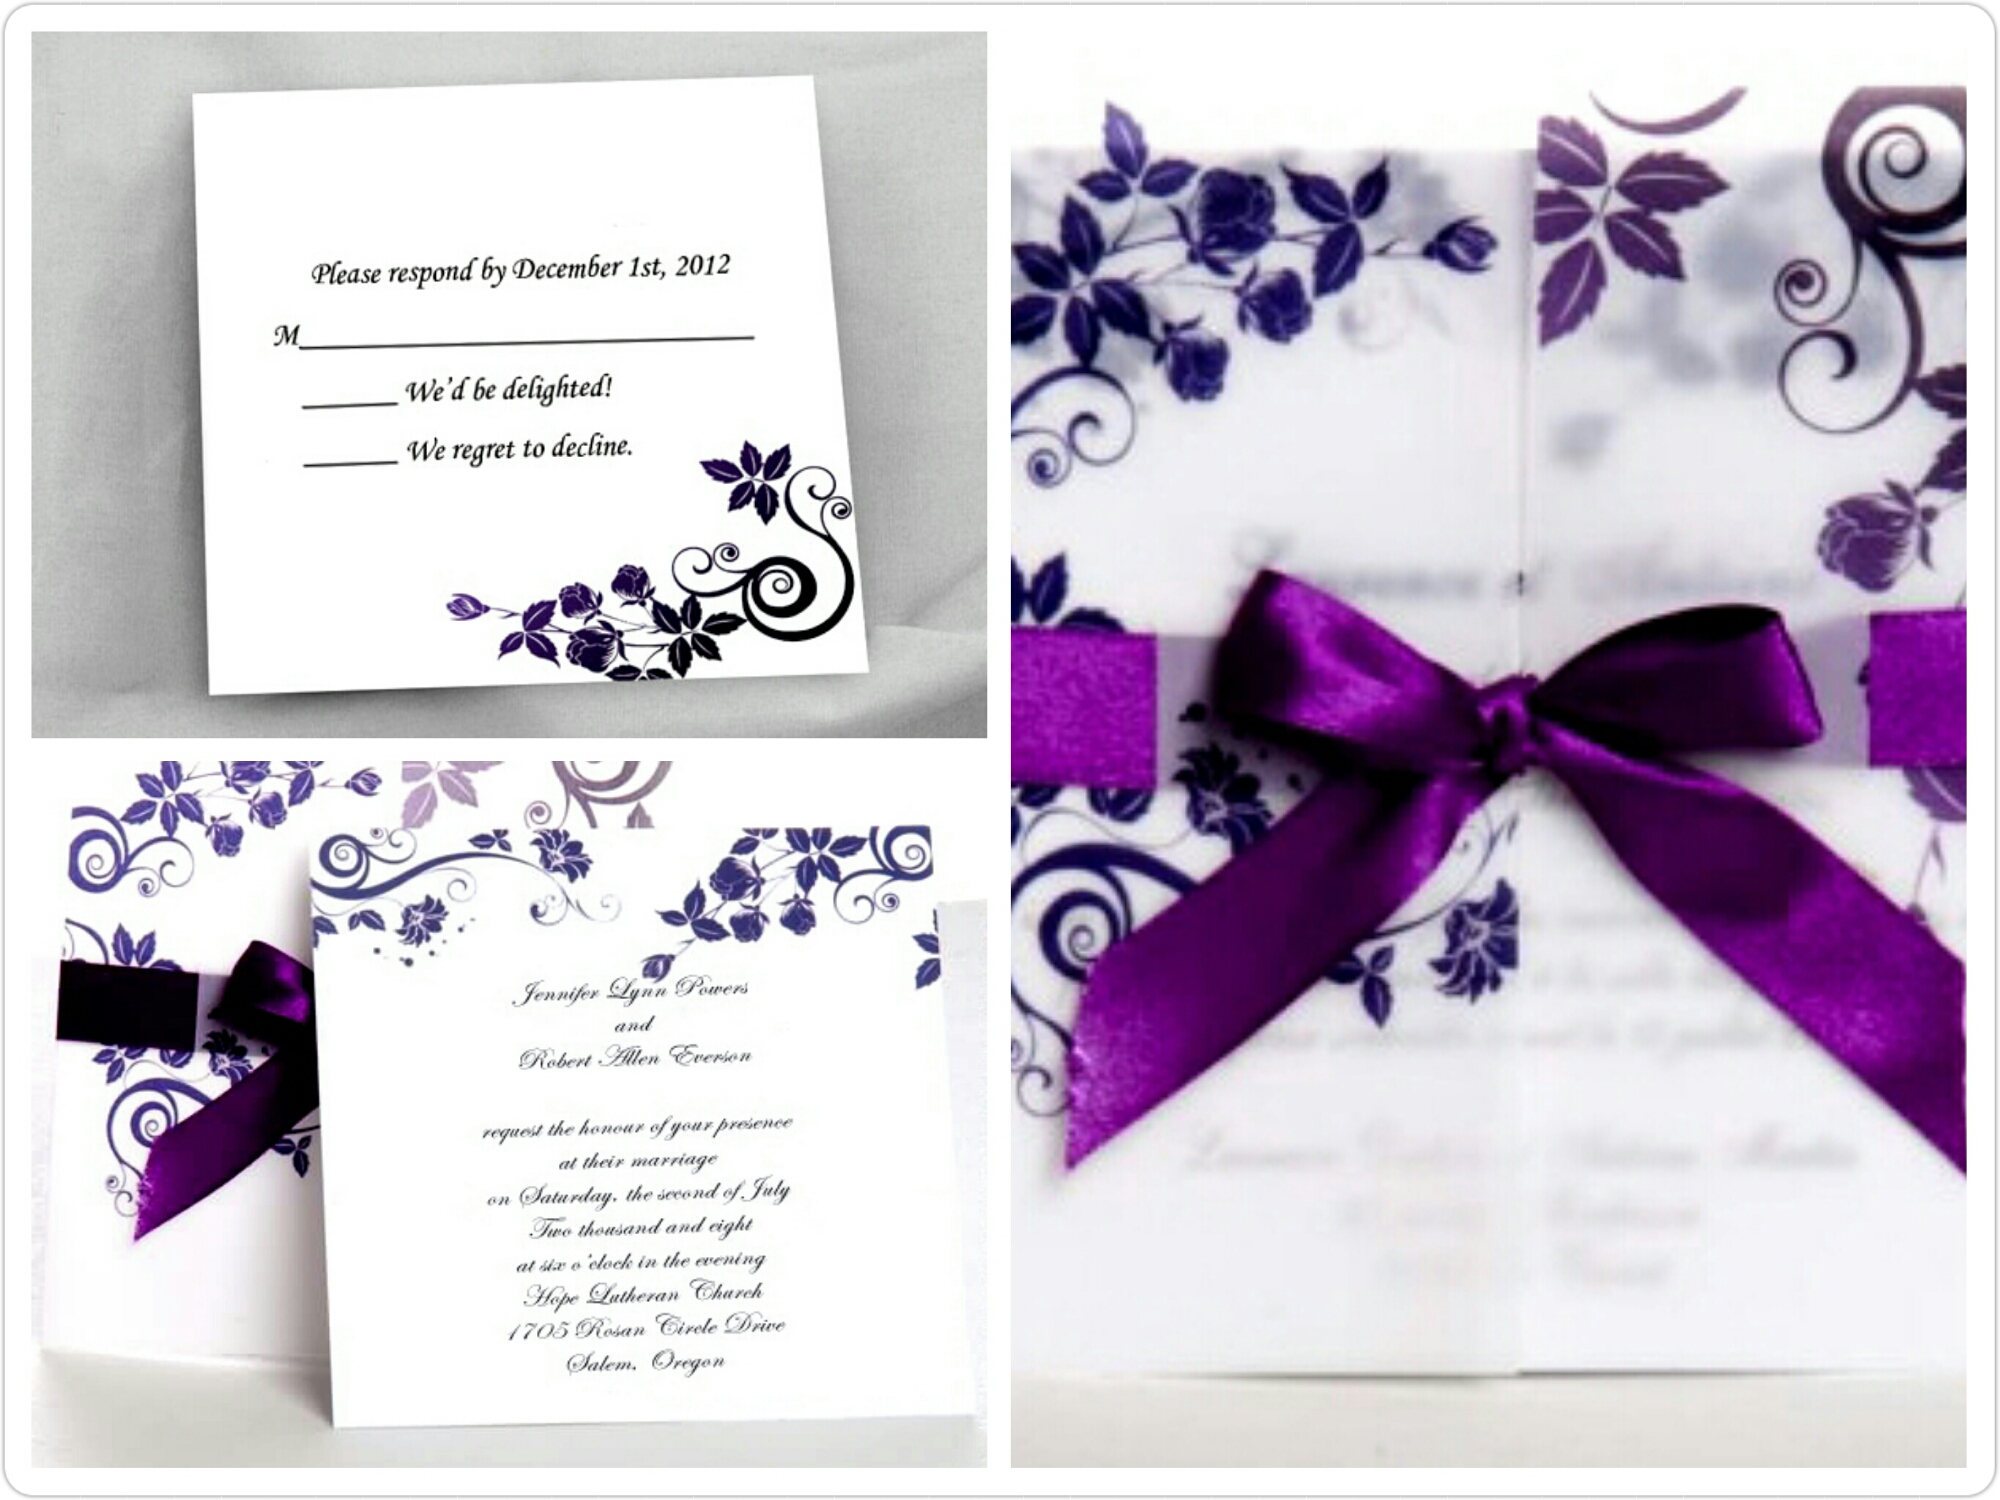 Wedding Invitations With Purple Ribbon: Perfectly Purple Wedding Invites For Fall